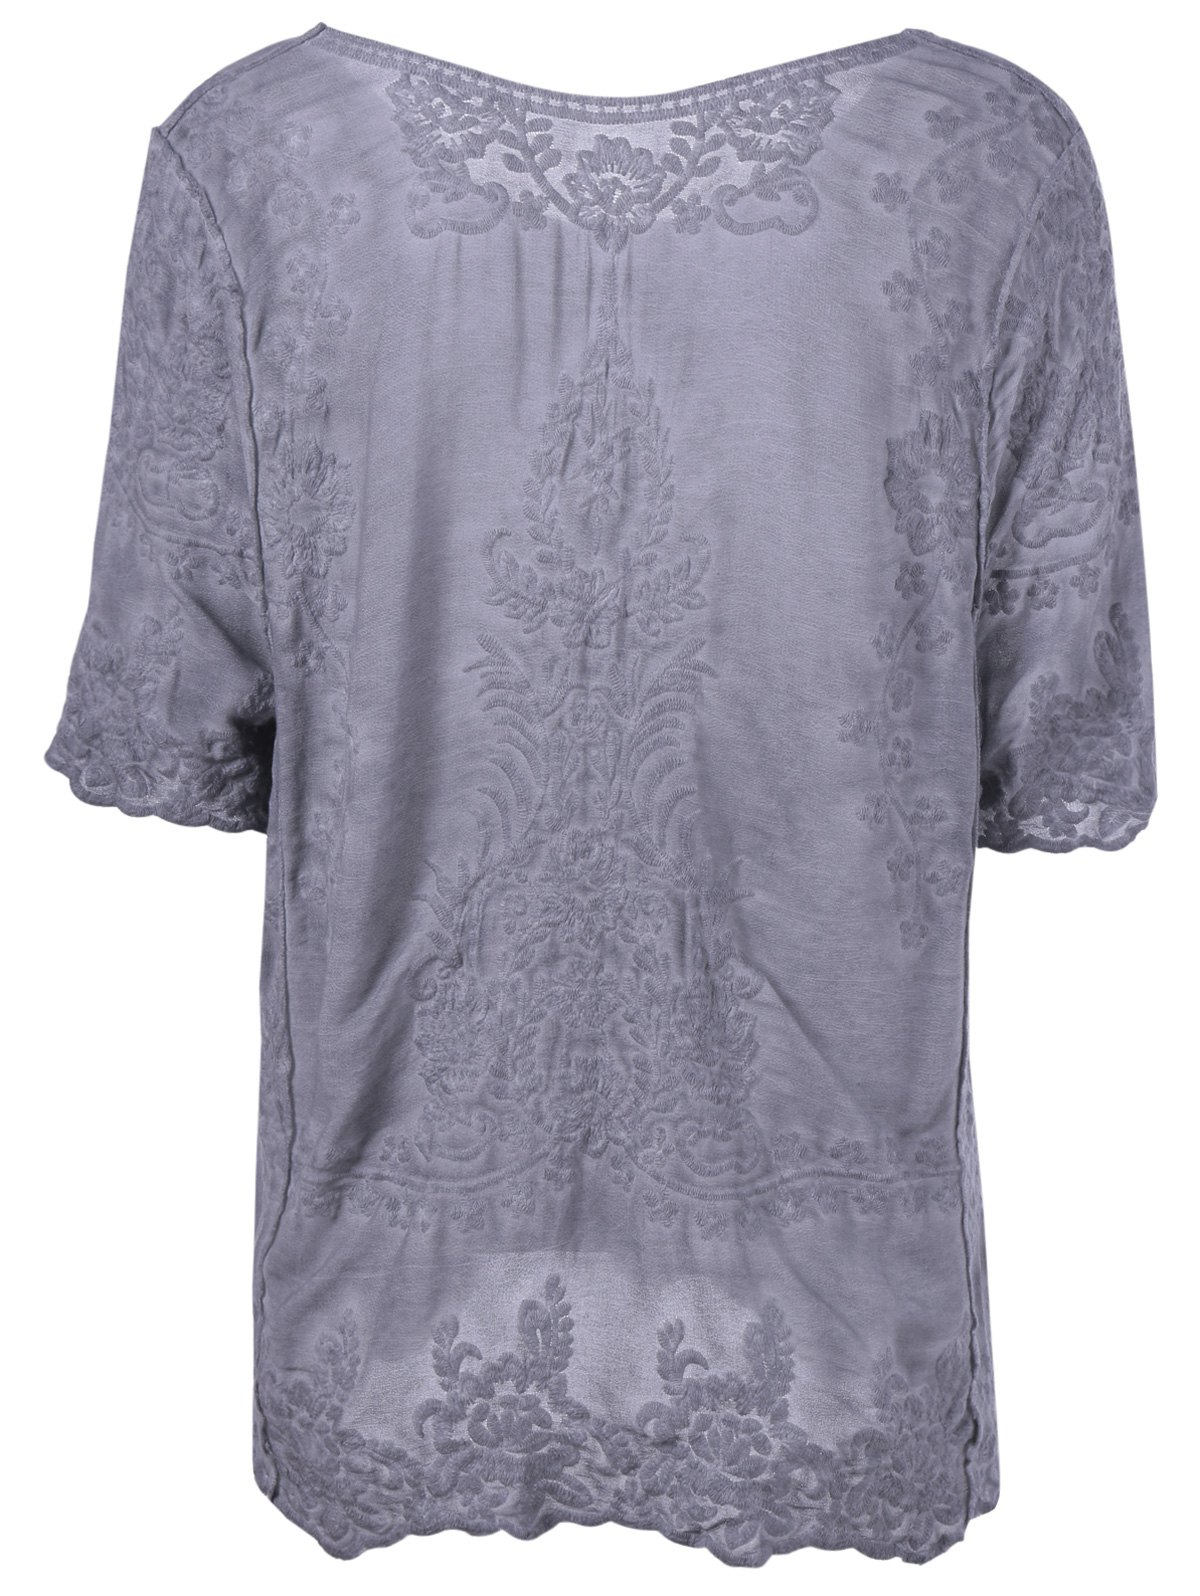 Stylish Women's Scoop Neck Crochet Short Sleeves Blouse - DEEP GRAY ONE SIZE(FIT SIZE XS TO M)